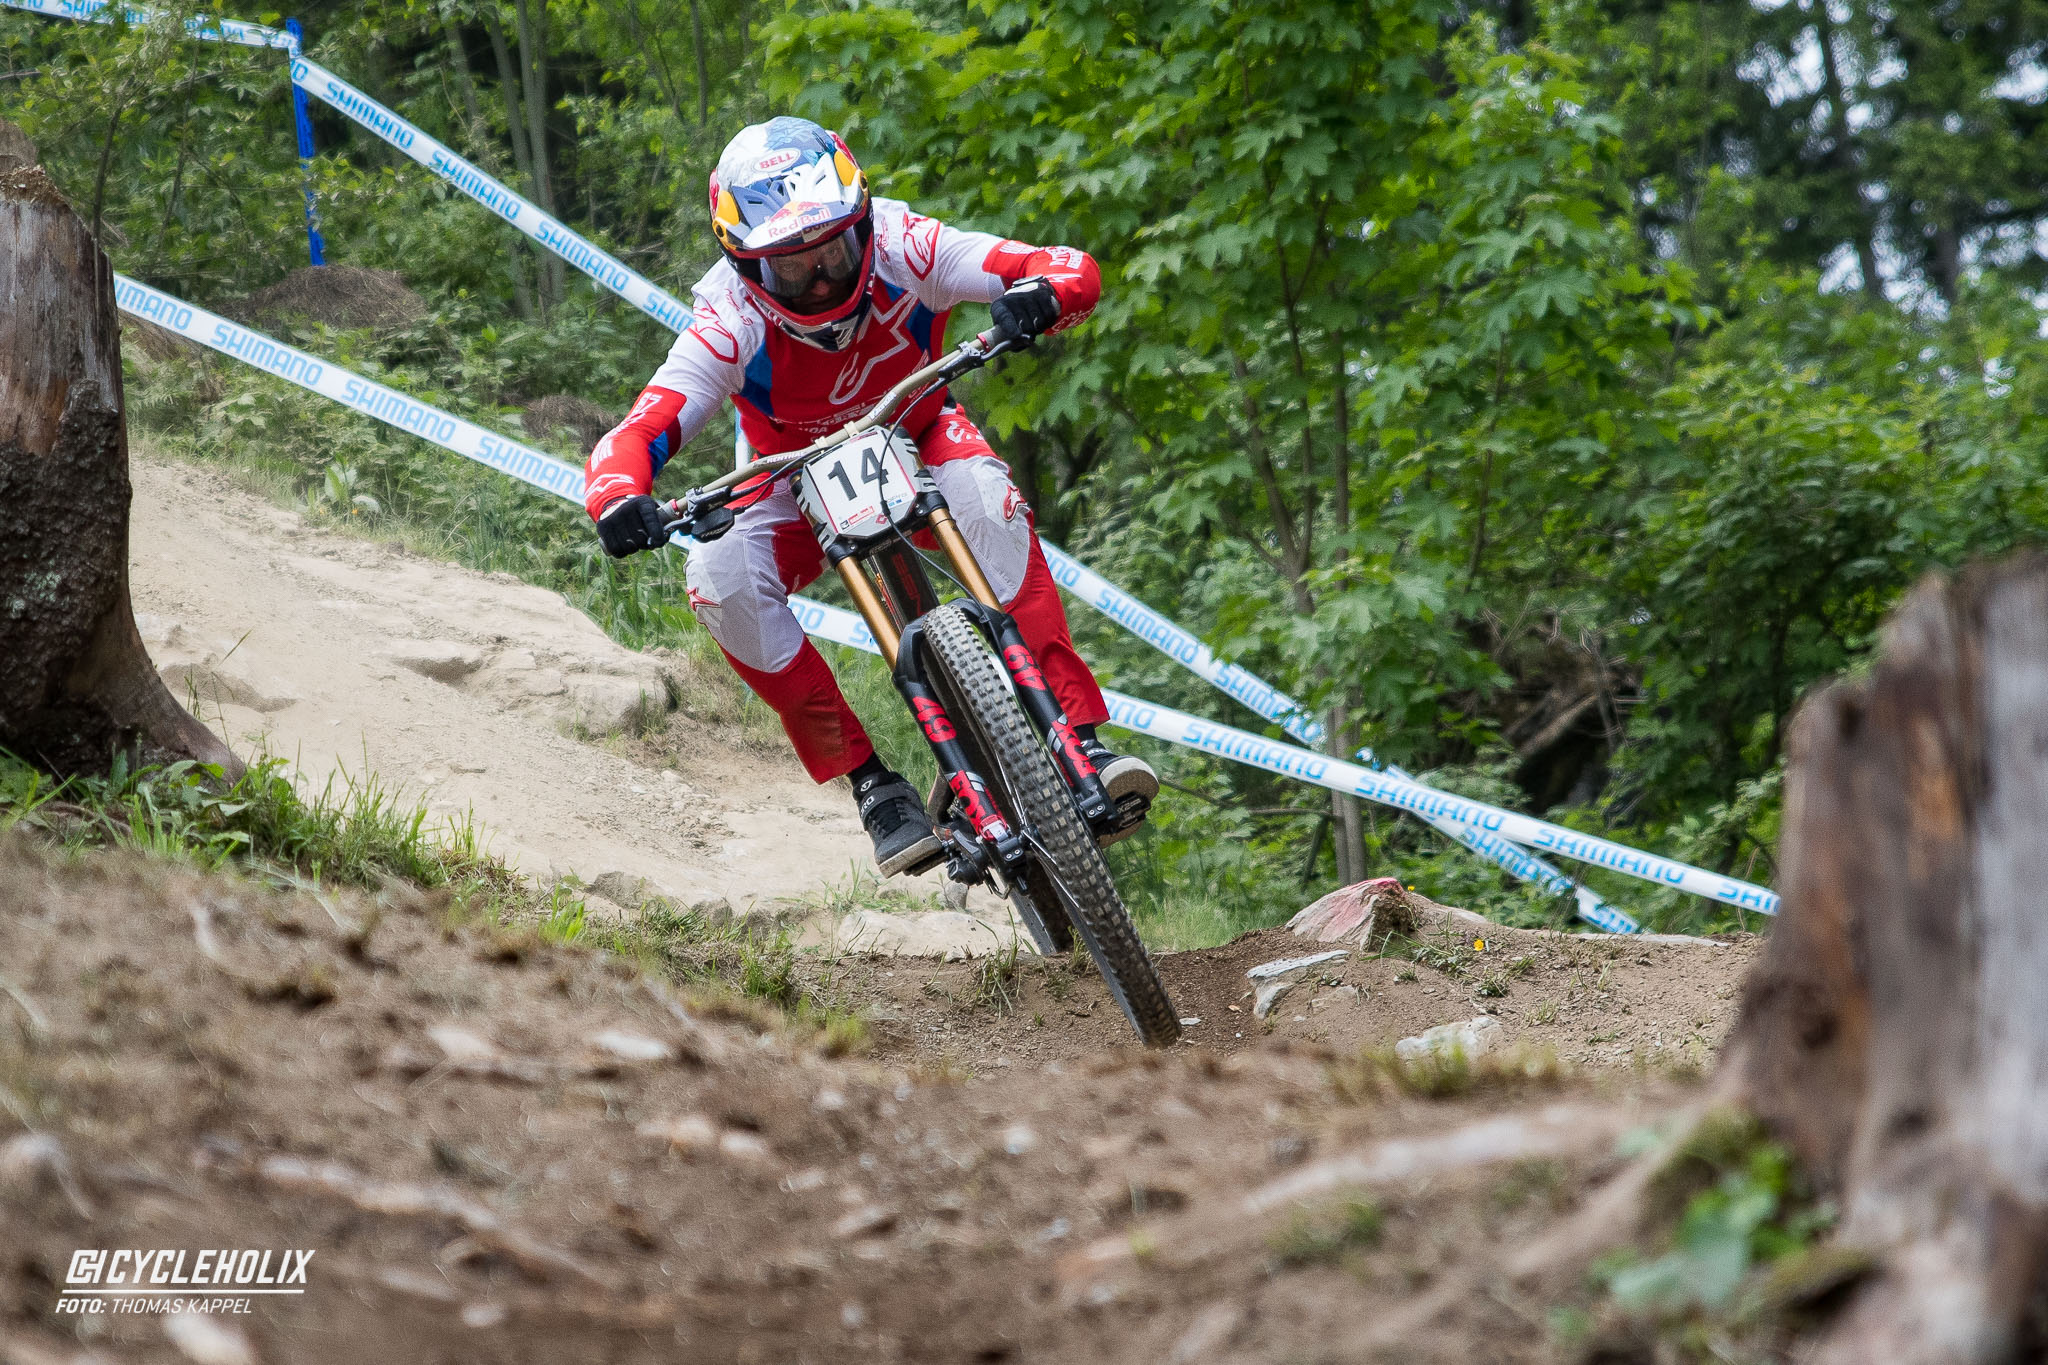 2019 Downhill Worldcup Leogang Finale Action QA 18